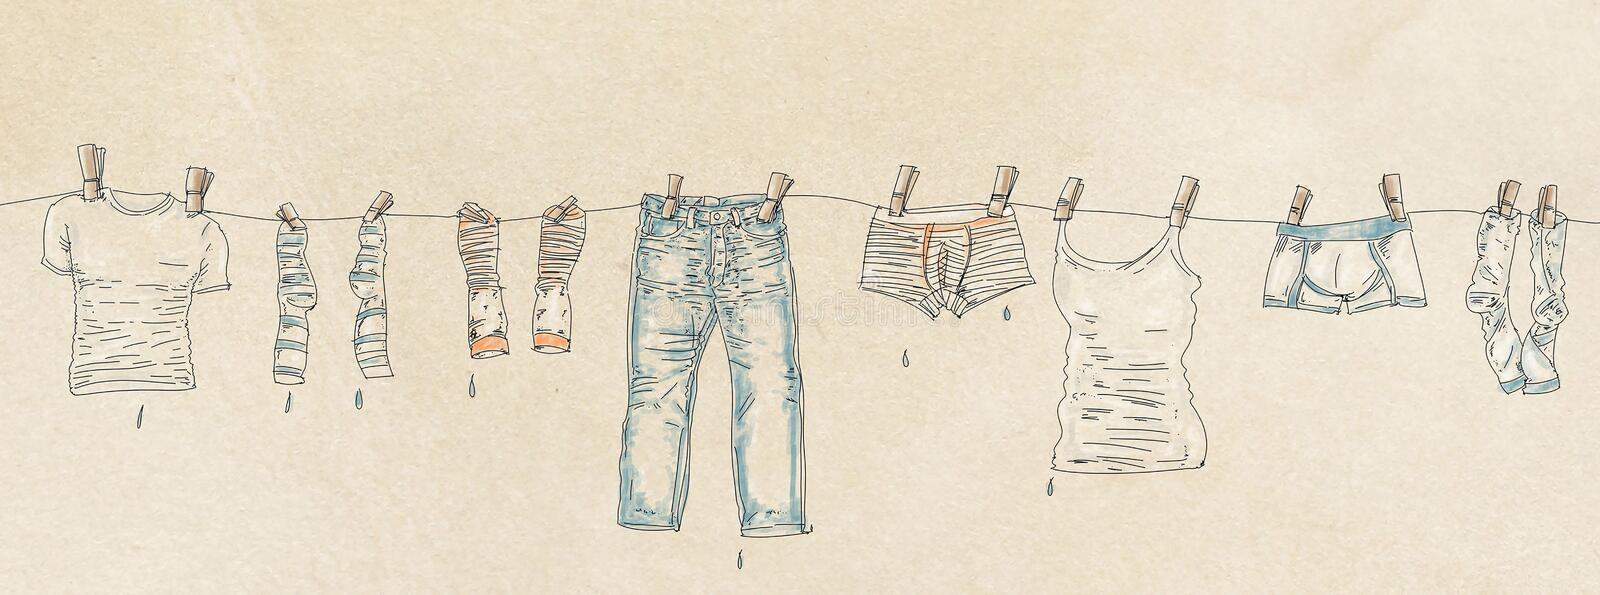 Banner clothes hanging out of him stock illustration